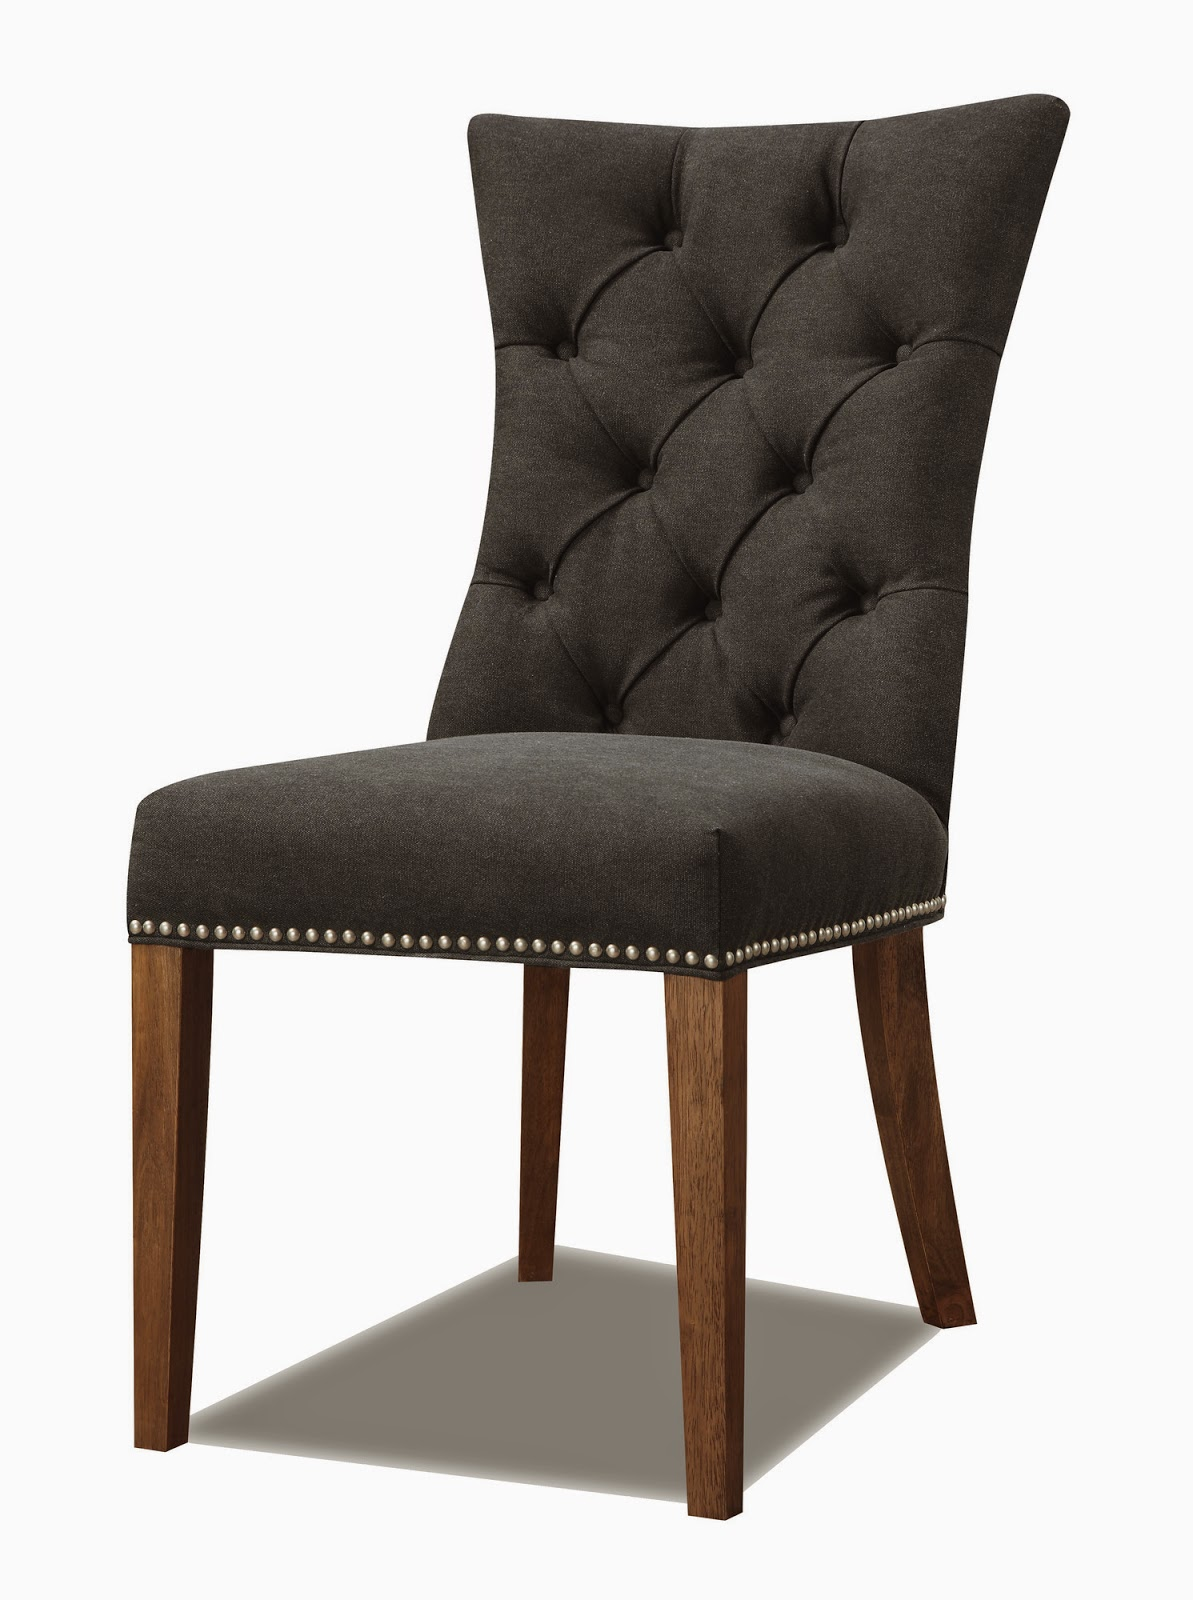 LoveYourRoom New Dining Room Chair Ideas